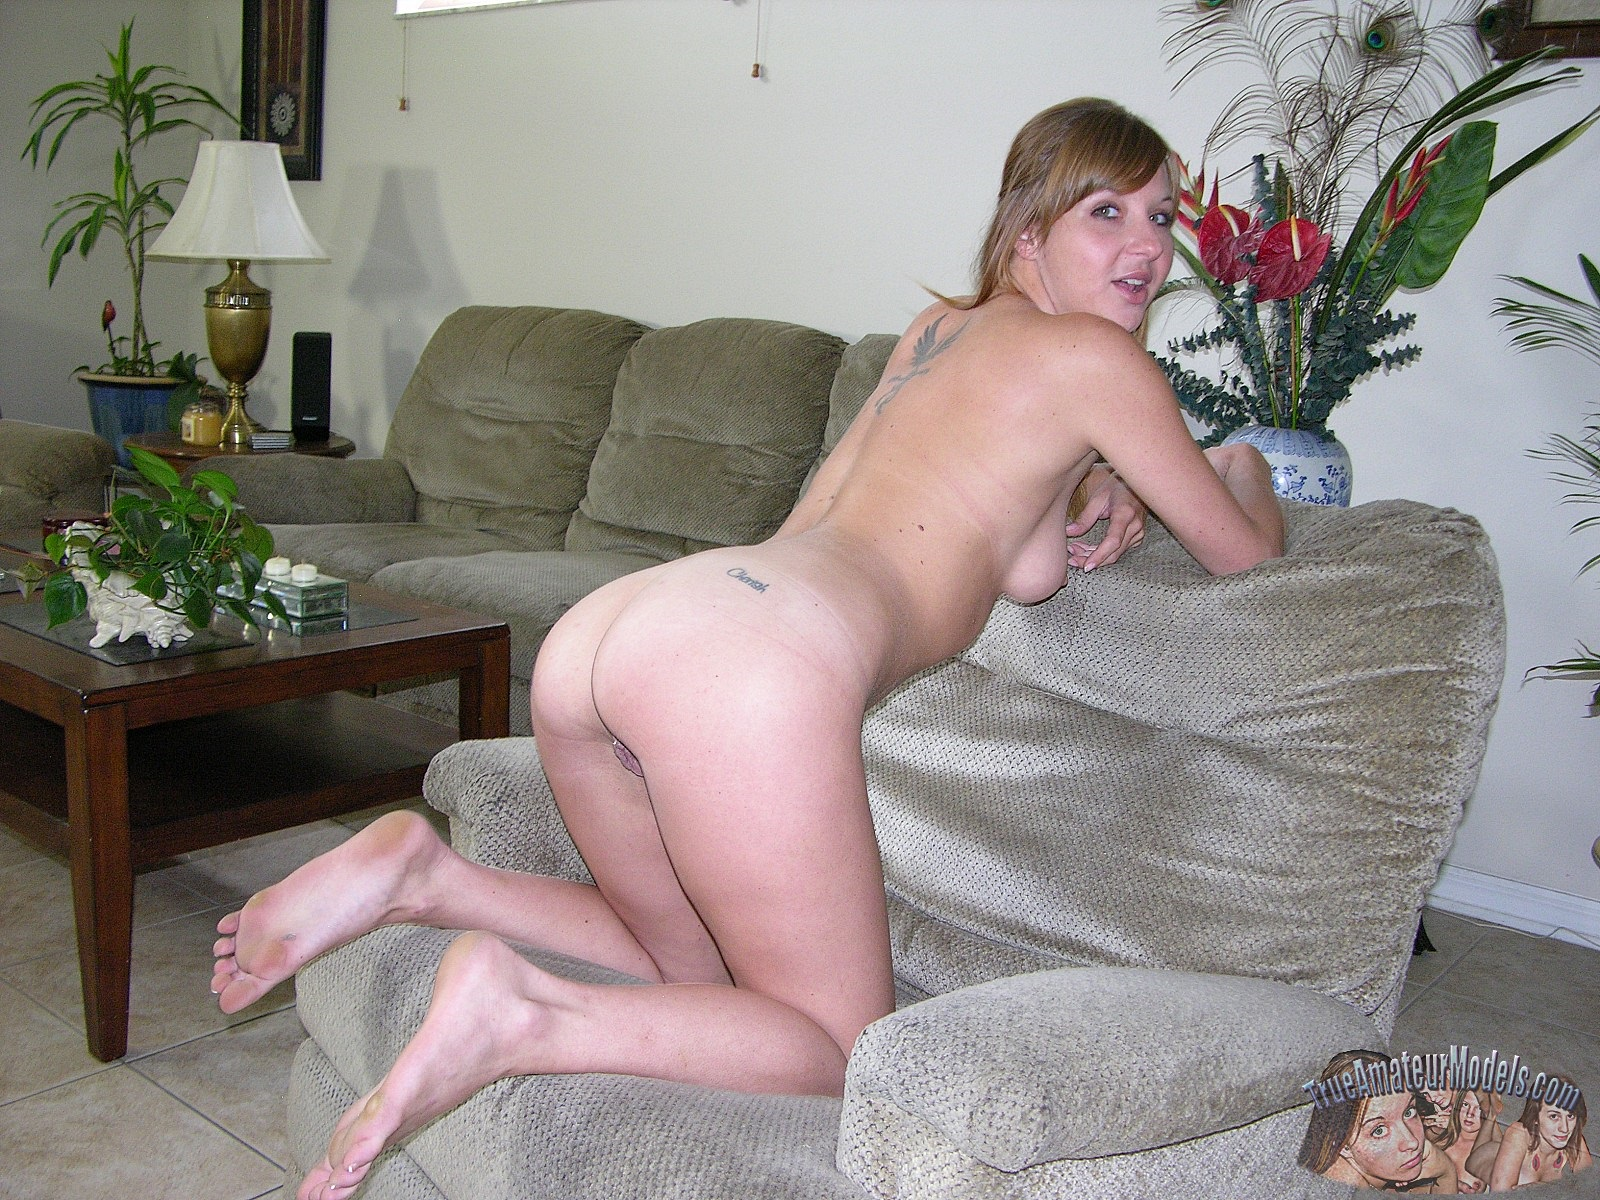 nude lady beautiful in africa most